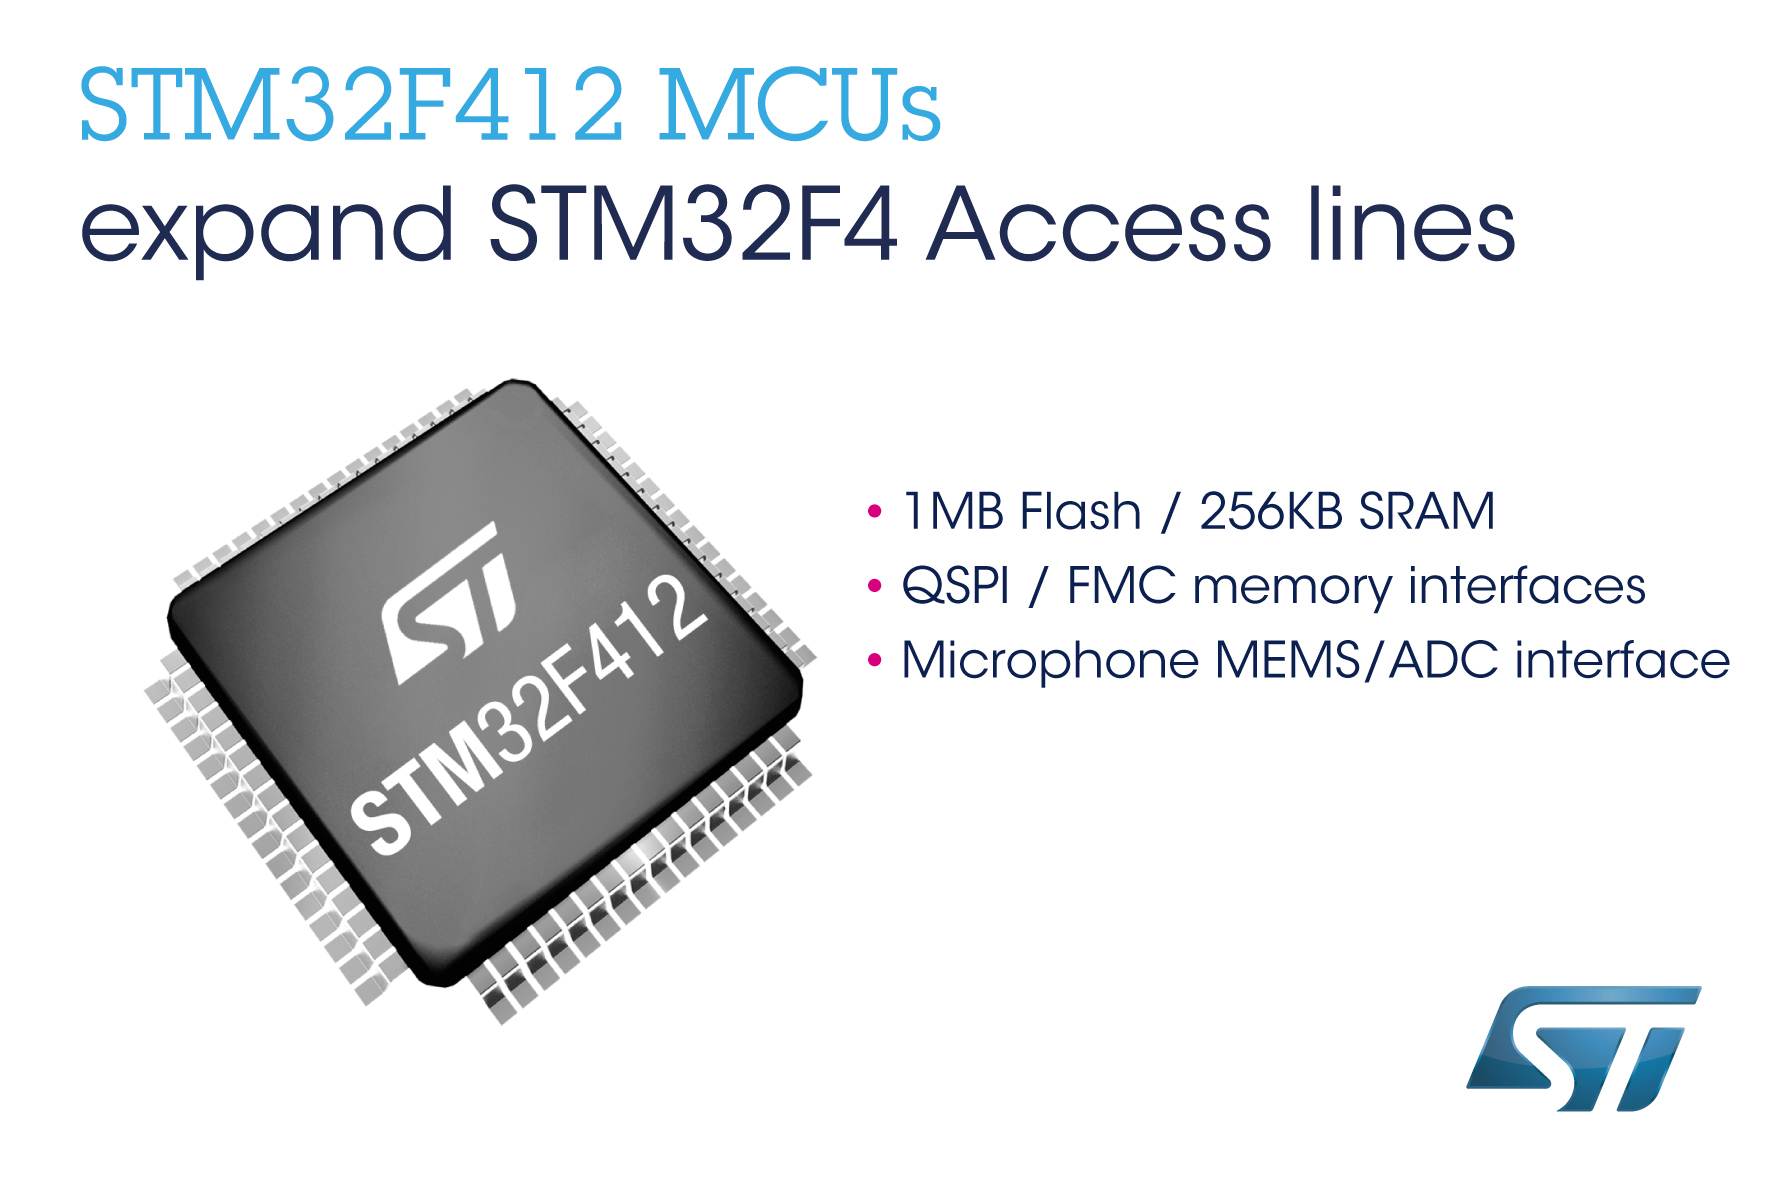 STMicroelectronics Enhances Access Lines of STM32F4 High